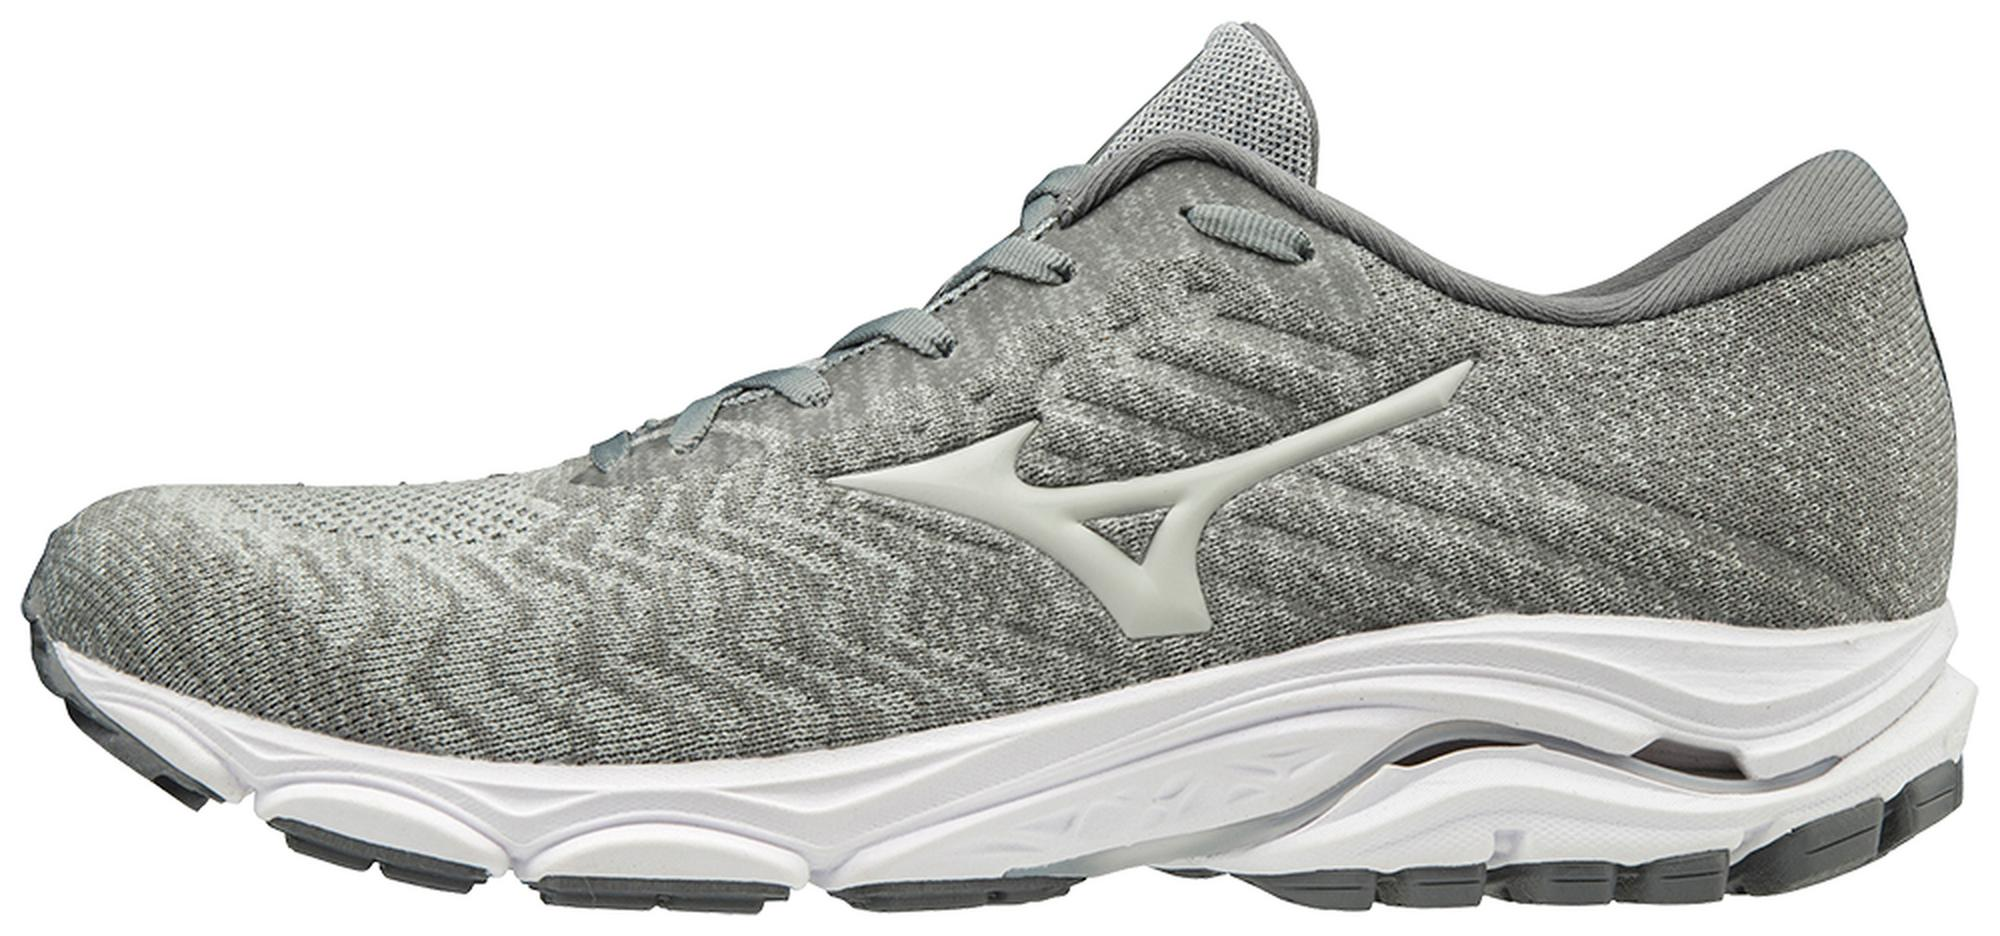 Mizuno Wave Inspire 16 Review